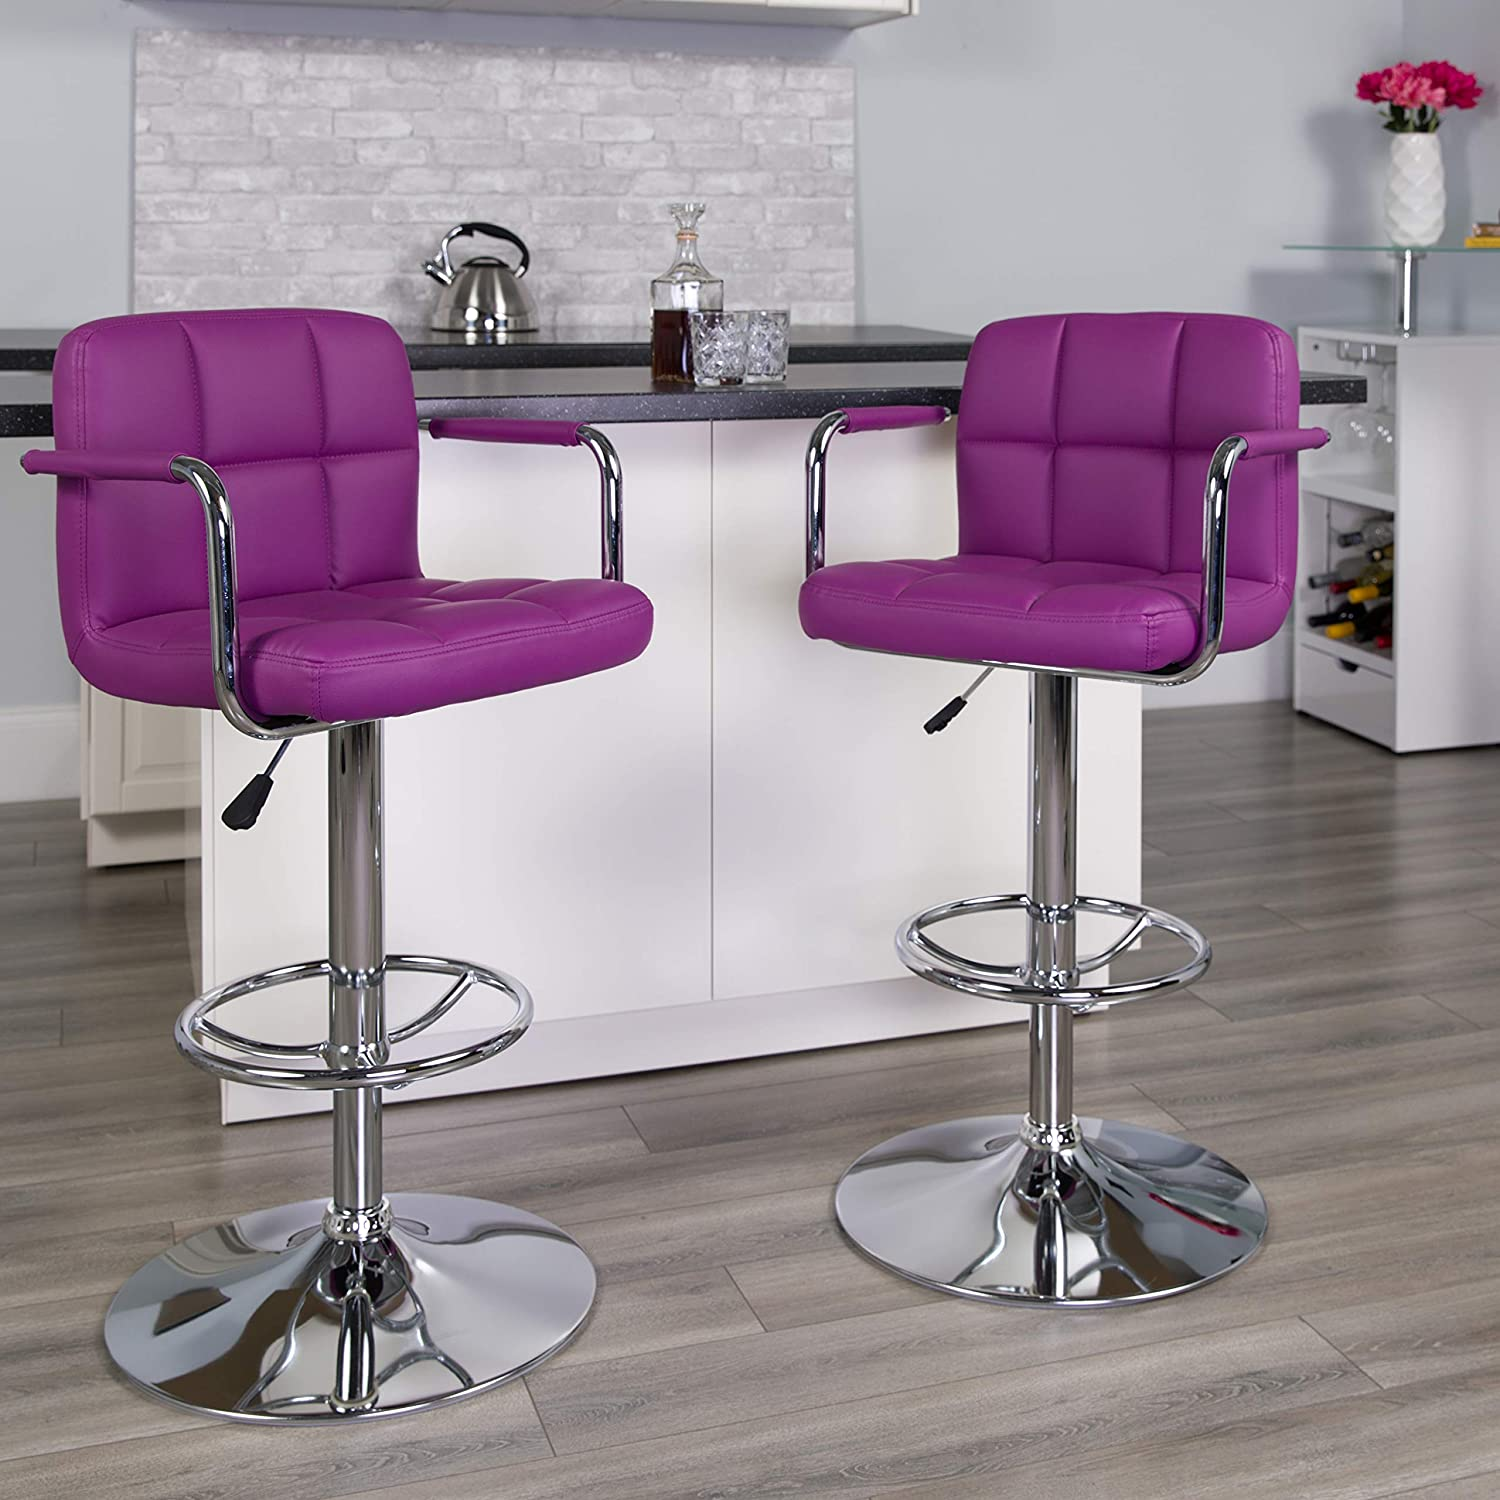 Flash Furniture 2 Pk. Contemporary Purple Quilted Vinyl Adjustable Height Barstool with Arms and Chrome Base